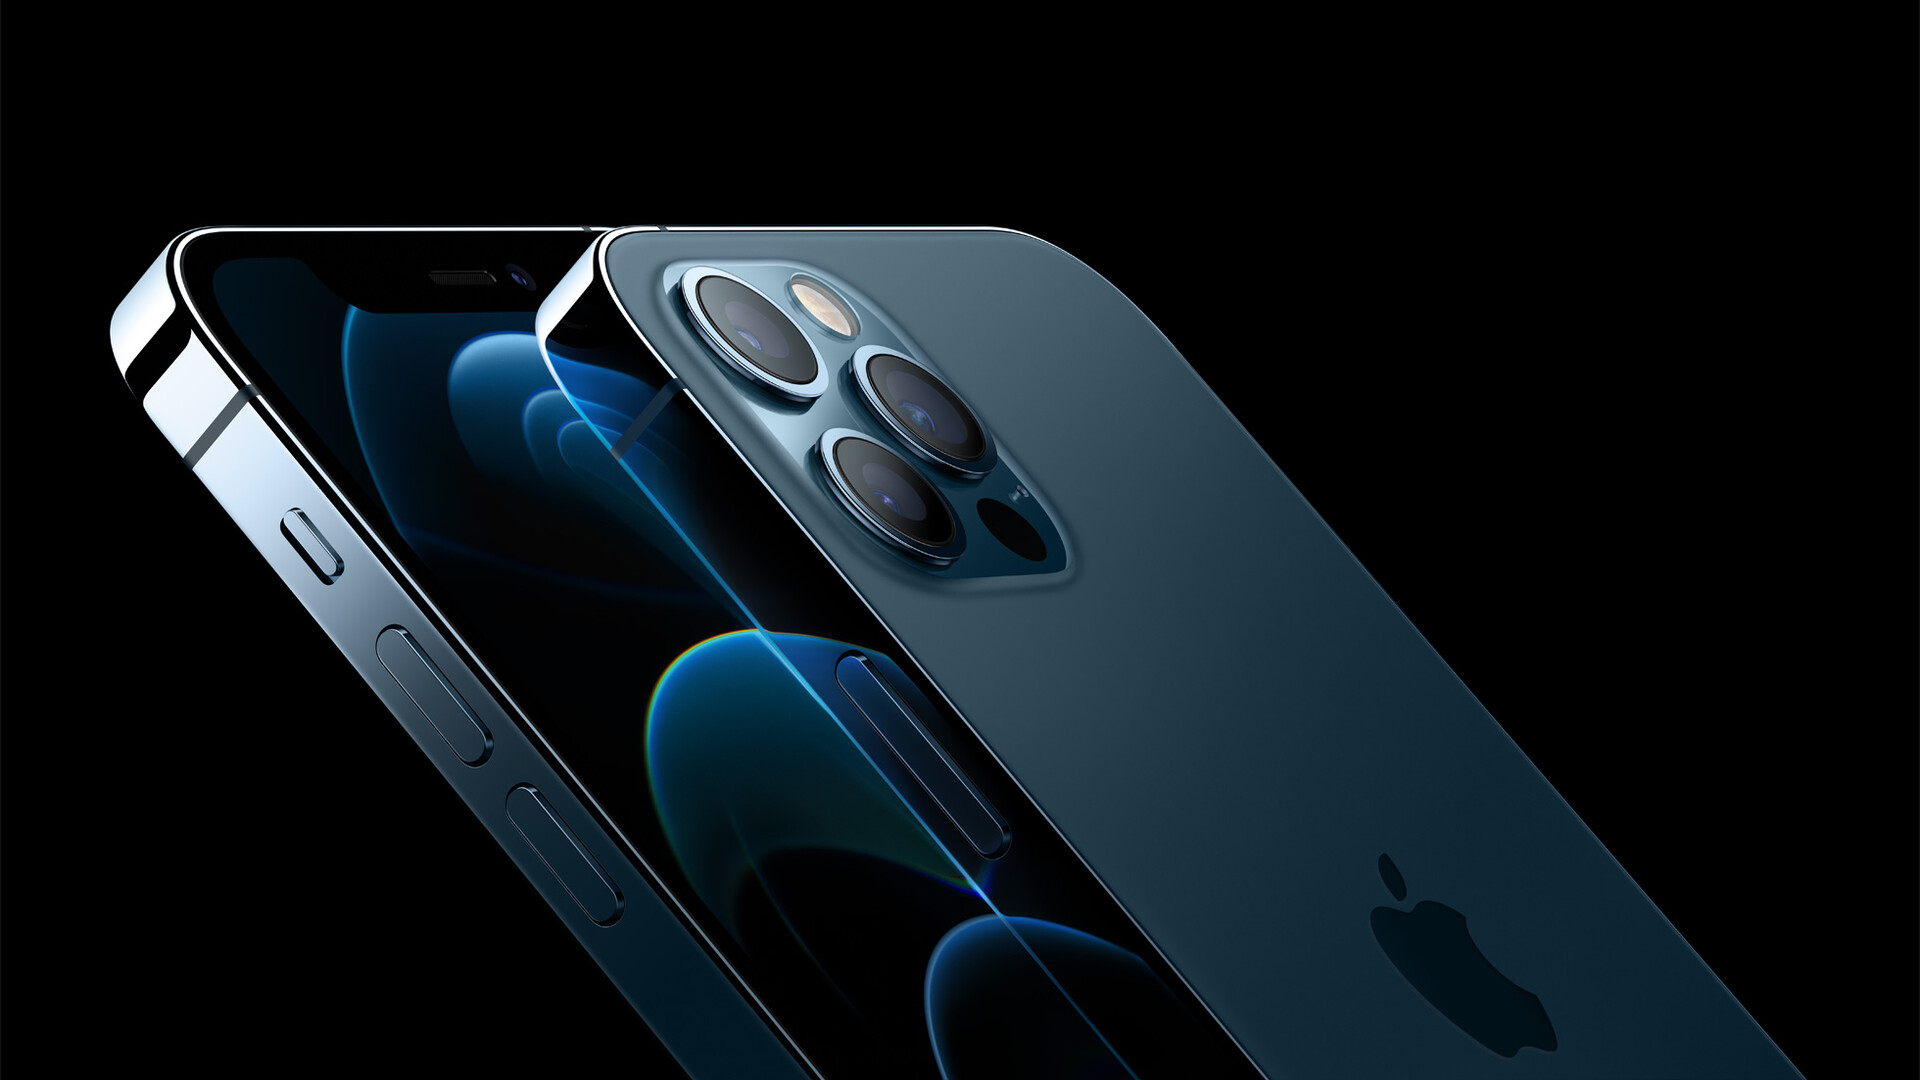 Apple Releases The Iphone 12 Mini And Pro Max Variants Amidst A Wireless Charging Controversy Notebookcheck Net News Чехлы для iphone 12/12 pro купить в москве! apple releases the iphone 12 mini and